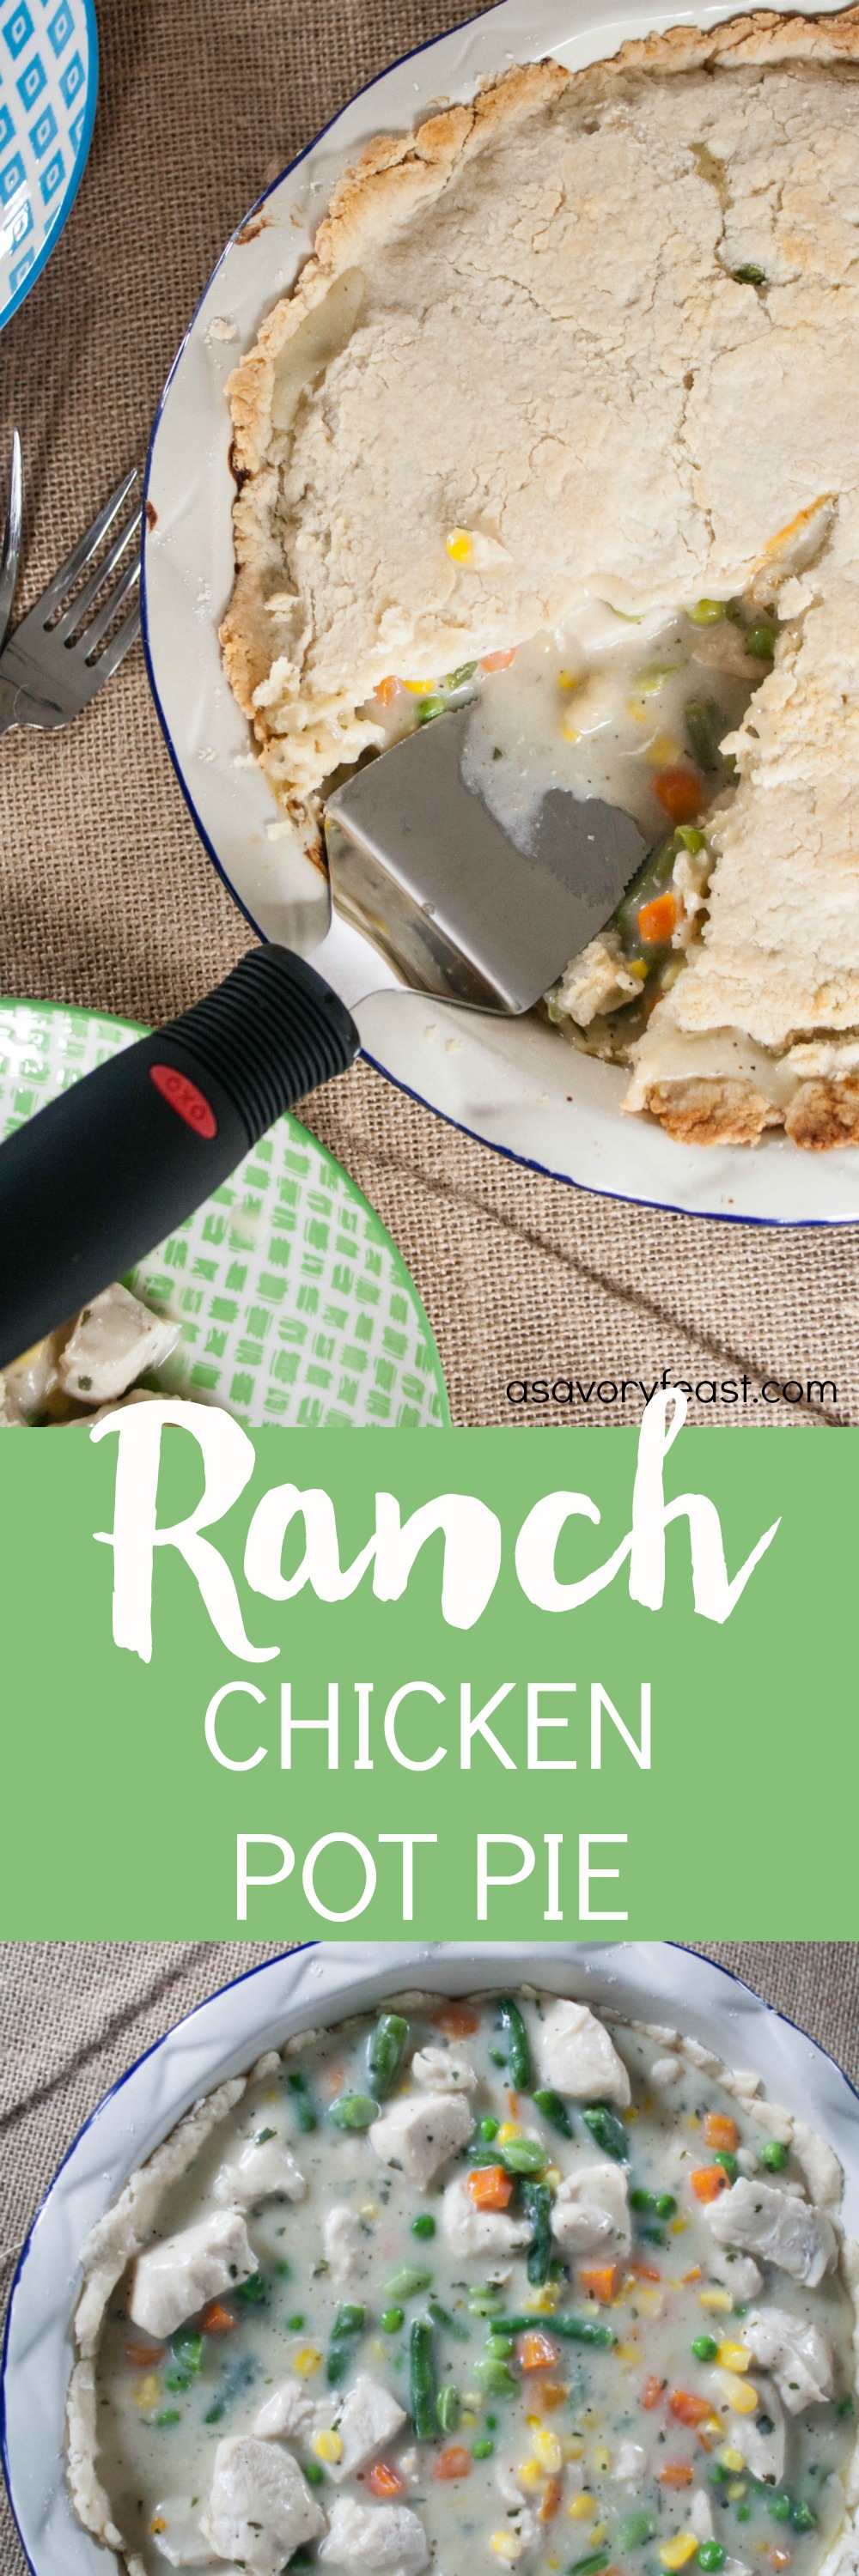 Try this twist on chicken pot pie for dinner tonight! Ranch Chicken Pot Pie a completely made from scratch with an easy pie crust and a savory ranch chicken filling.